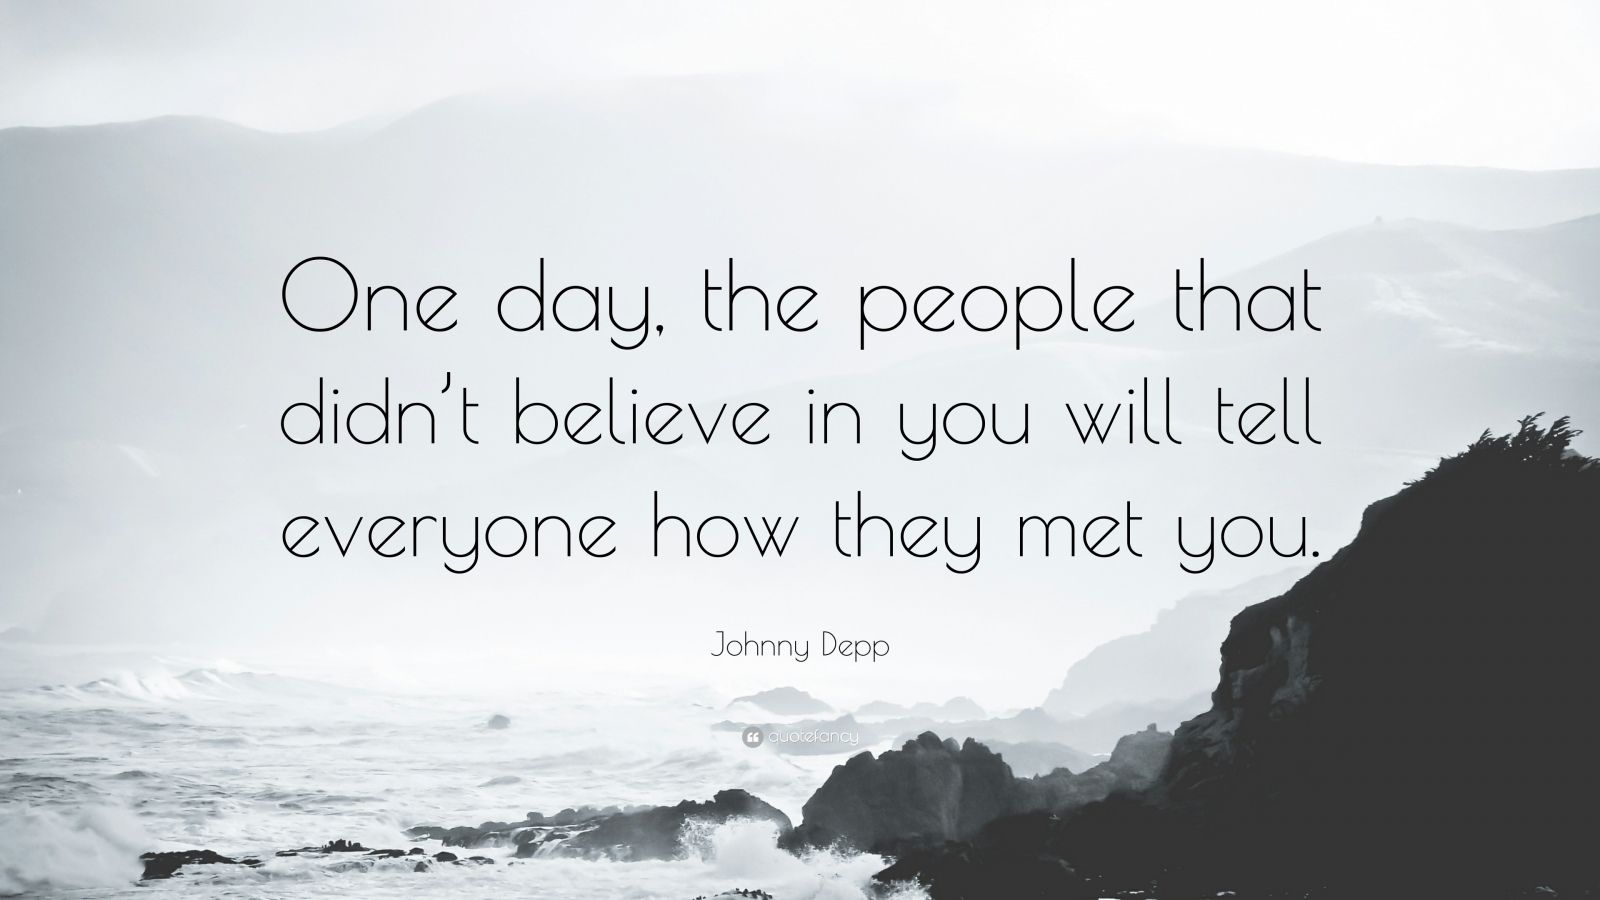 "Quotes About People: ""One day, the people that didn't believe in you will tell everyone how they met you."" — Johnny Depp"